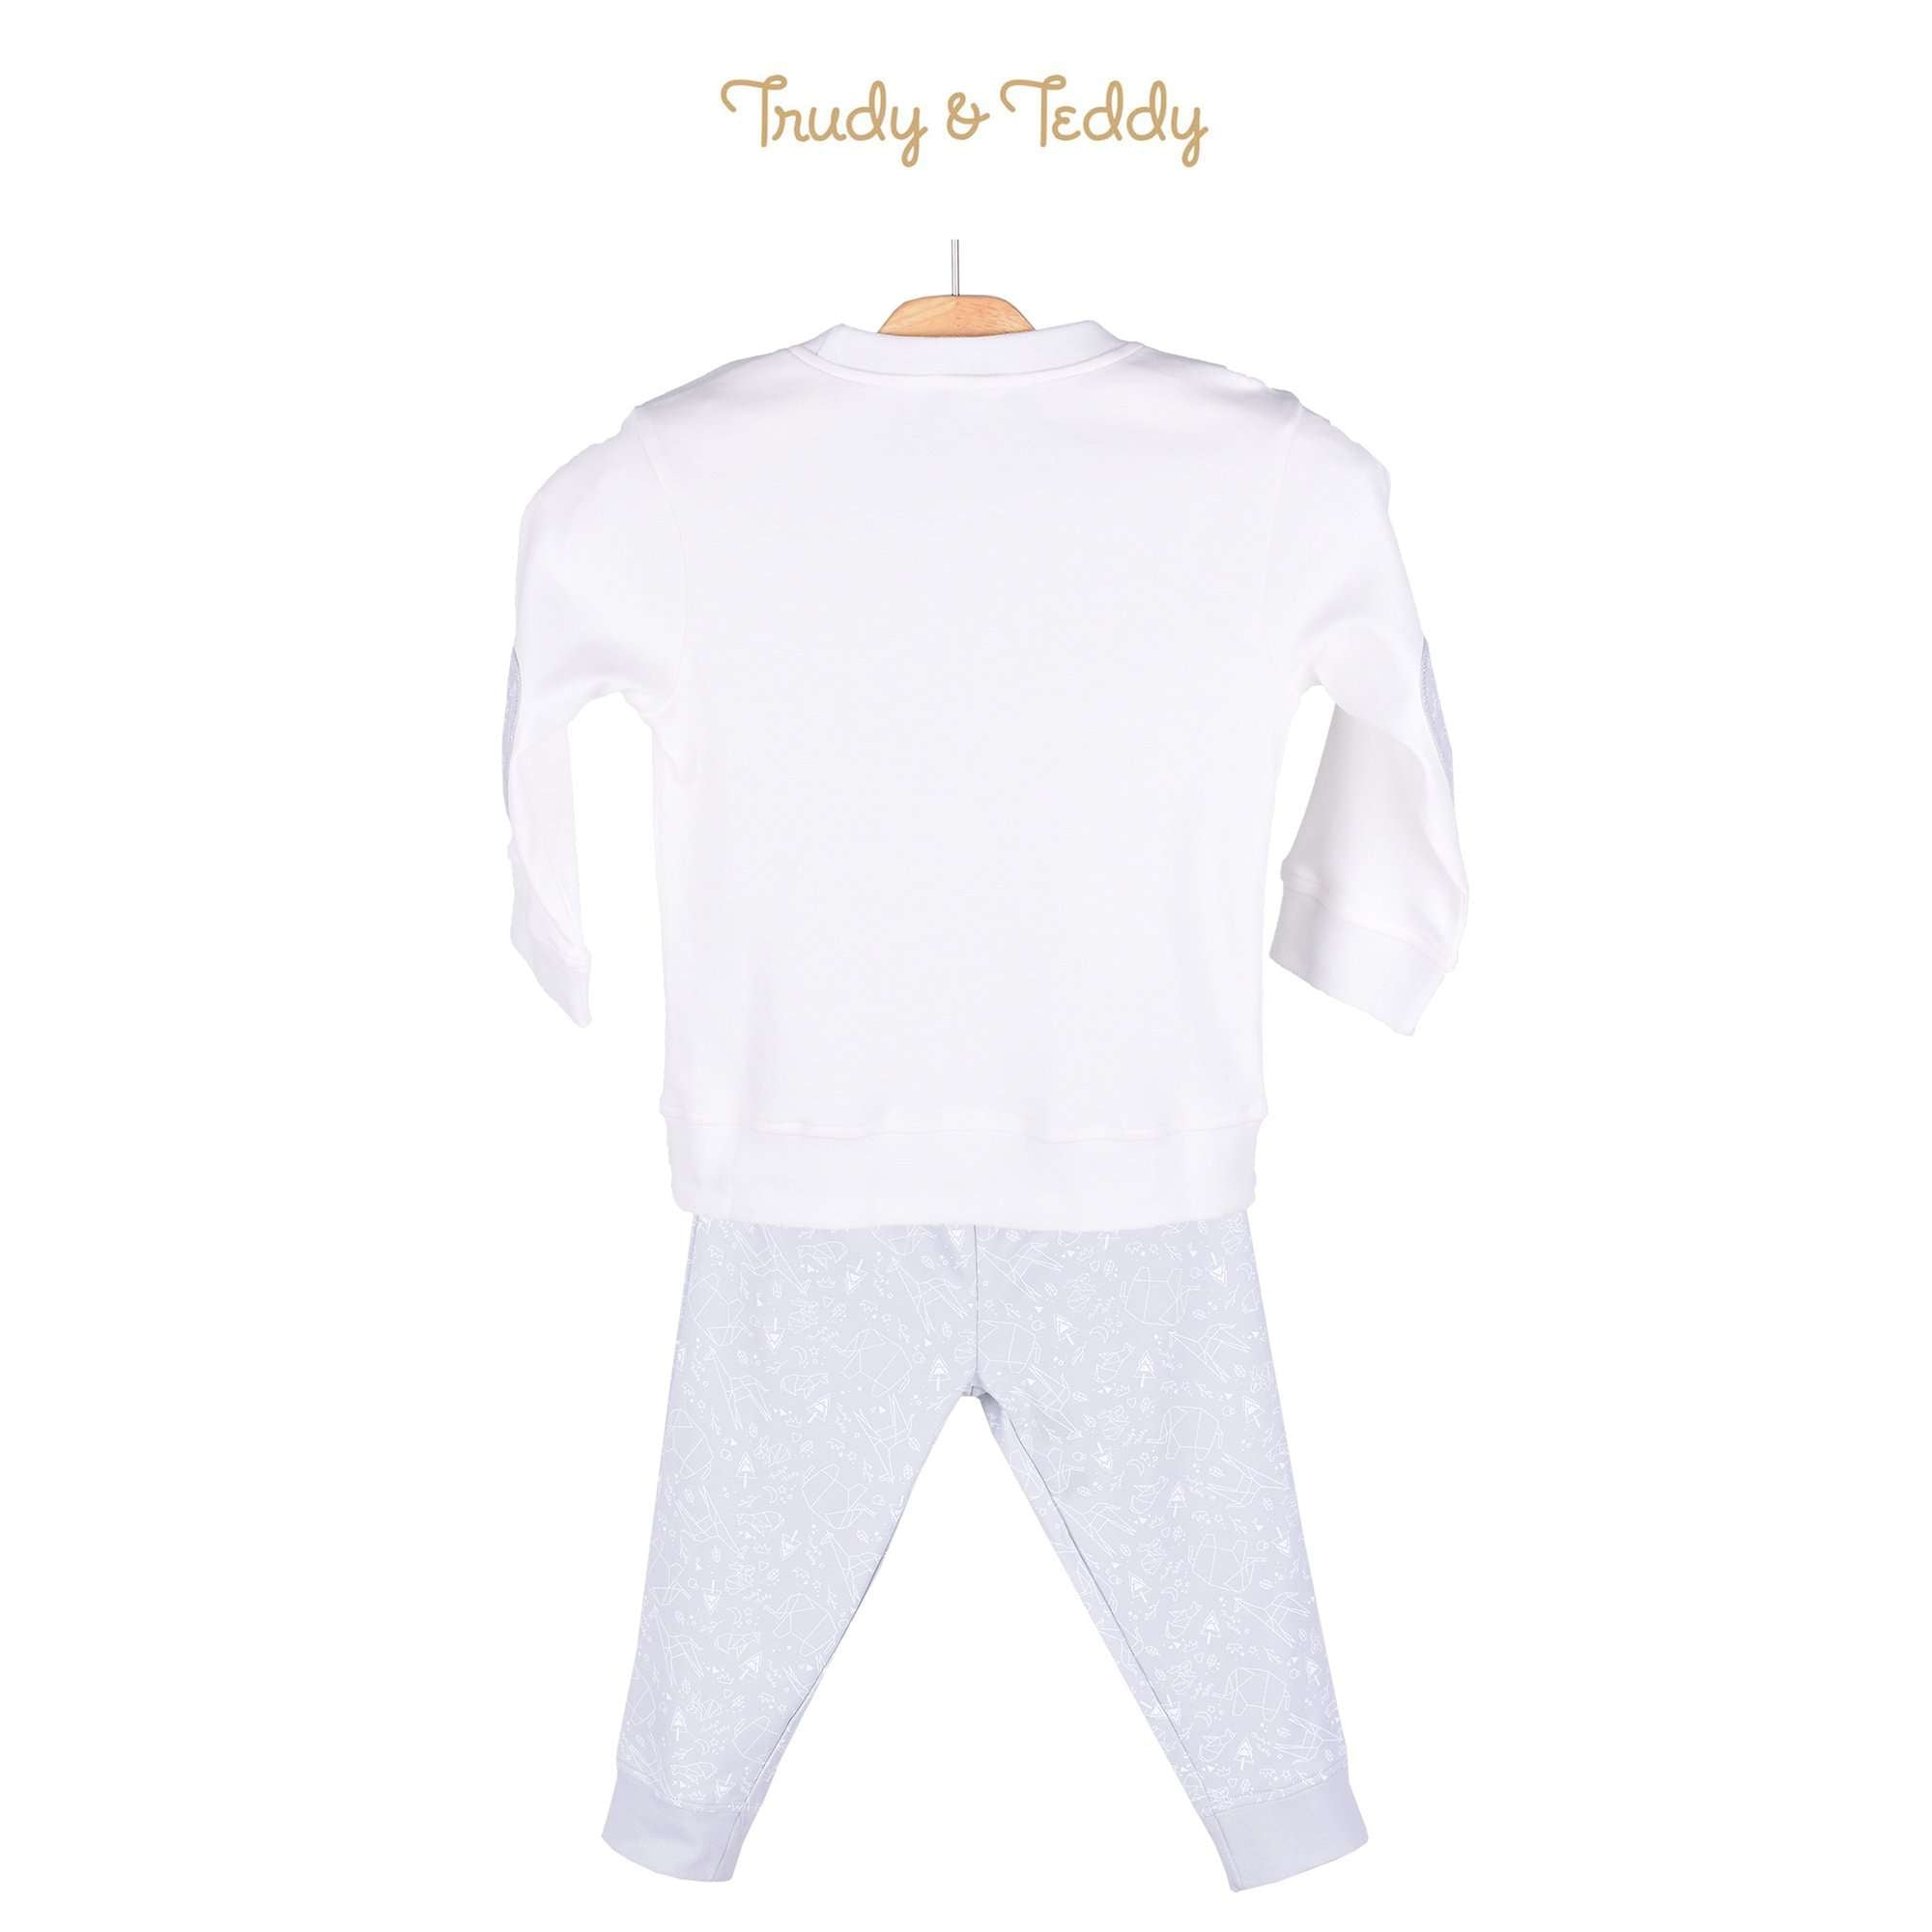 Trudy & Teddy Toddler Boy Long Sleeve Long Pants Suit 825021-432 : Buy Trudy & Teddy online at CMG.MY